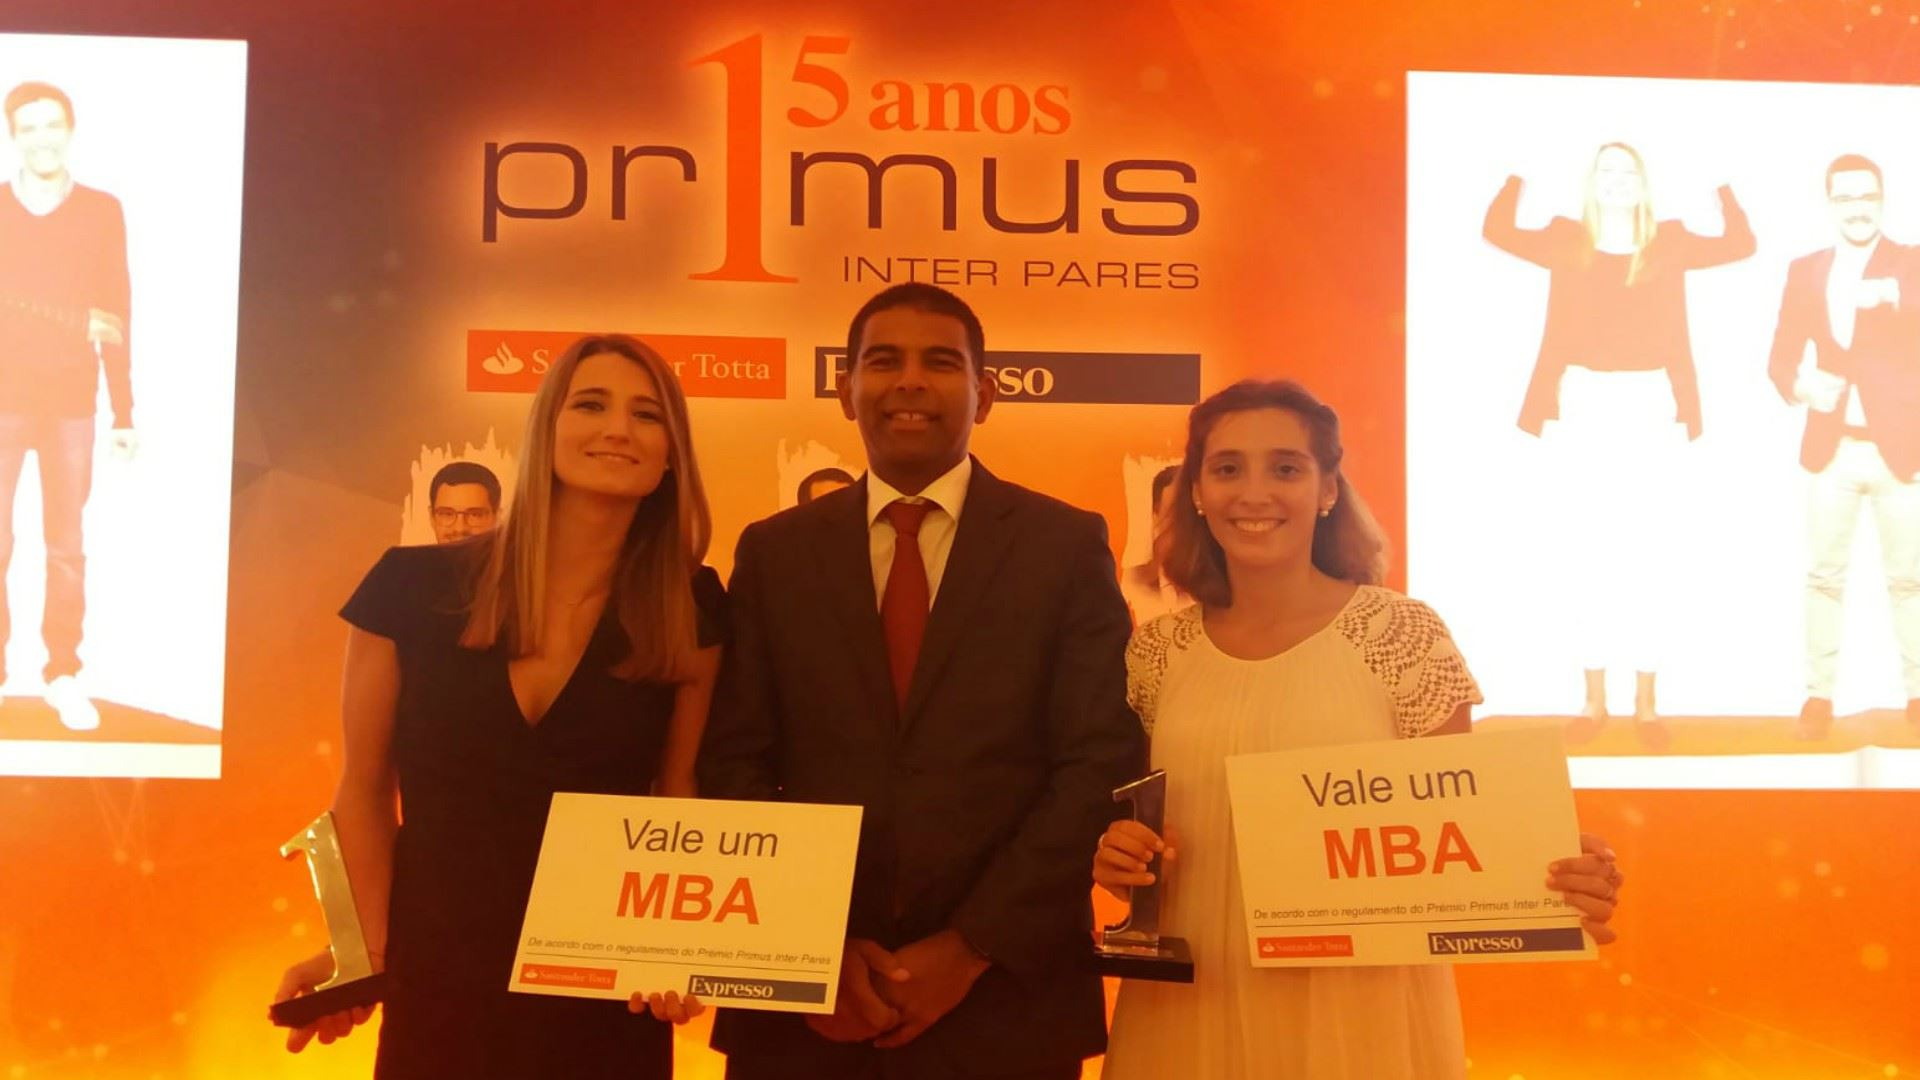 Nova SBE Students conquer 2nd and 3rd places of the Primus Inter Pares Awards